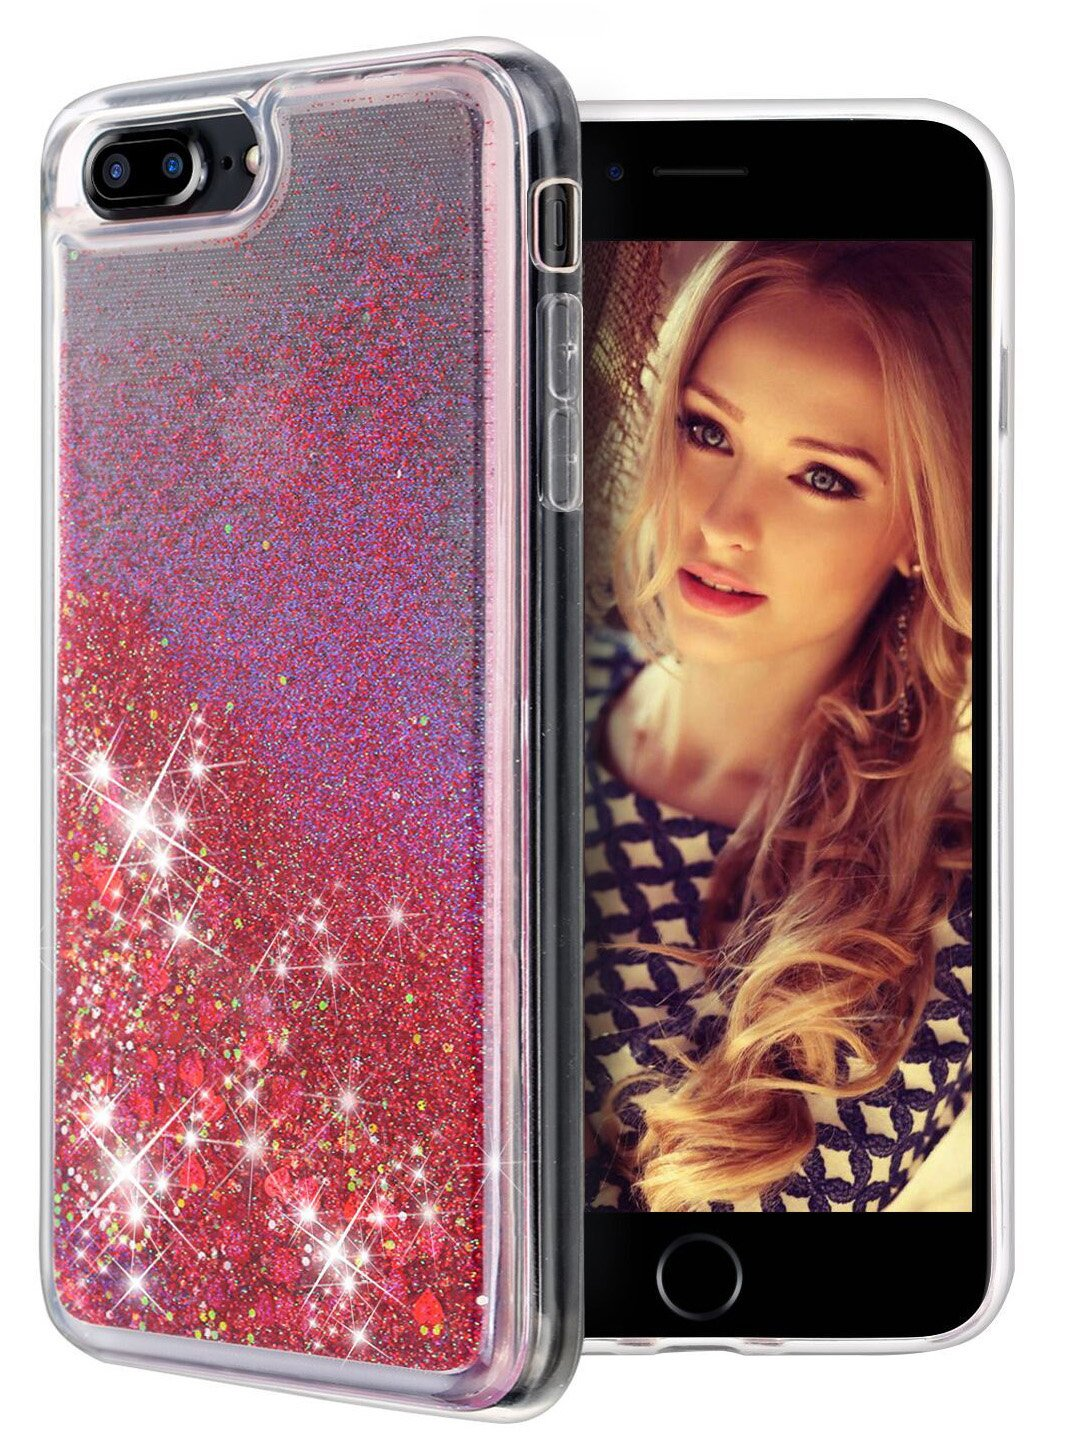 iPhone 7 Plus Case, iPhone 8 Plus Case, WORLDMOM Double Layer Design Bling Flowing Liquid Floating Sparkle Colorful Waterfall TPU Protective Phone Case for iPhone 7 Plus/ 8 Plus [5.5'], Blue